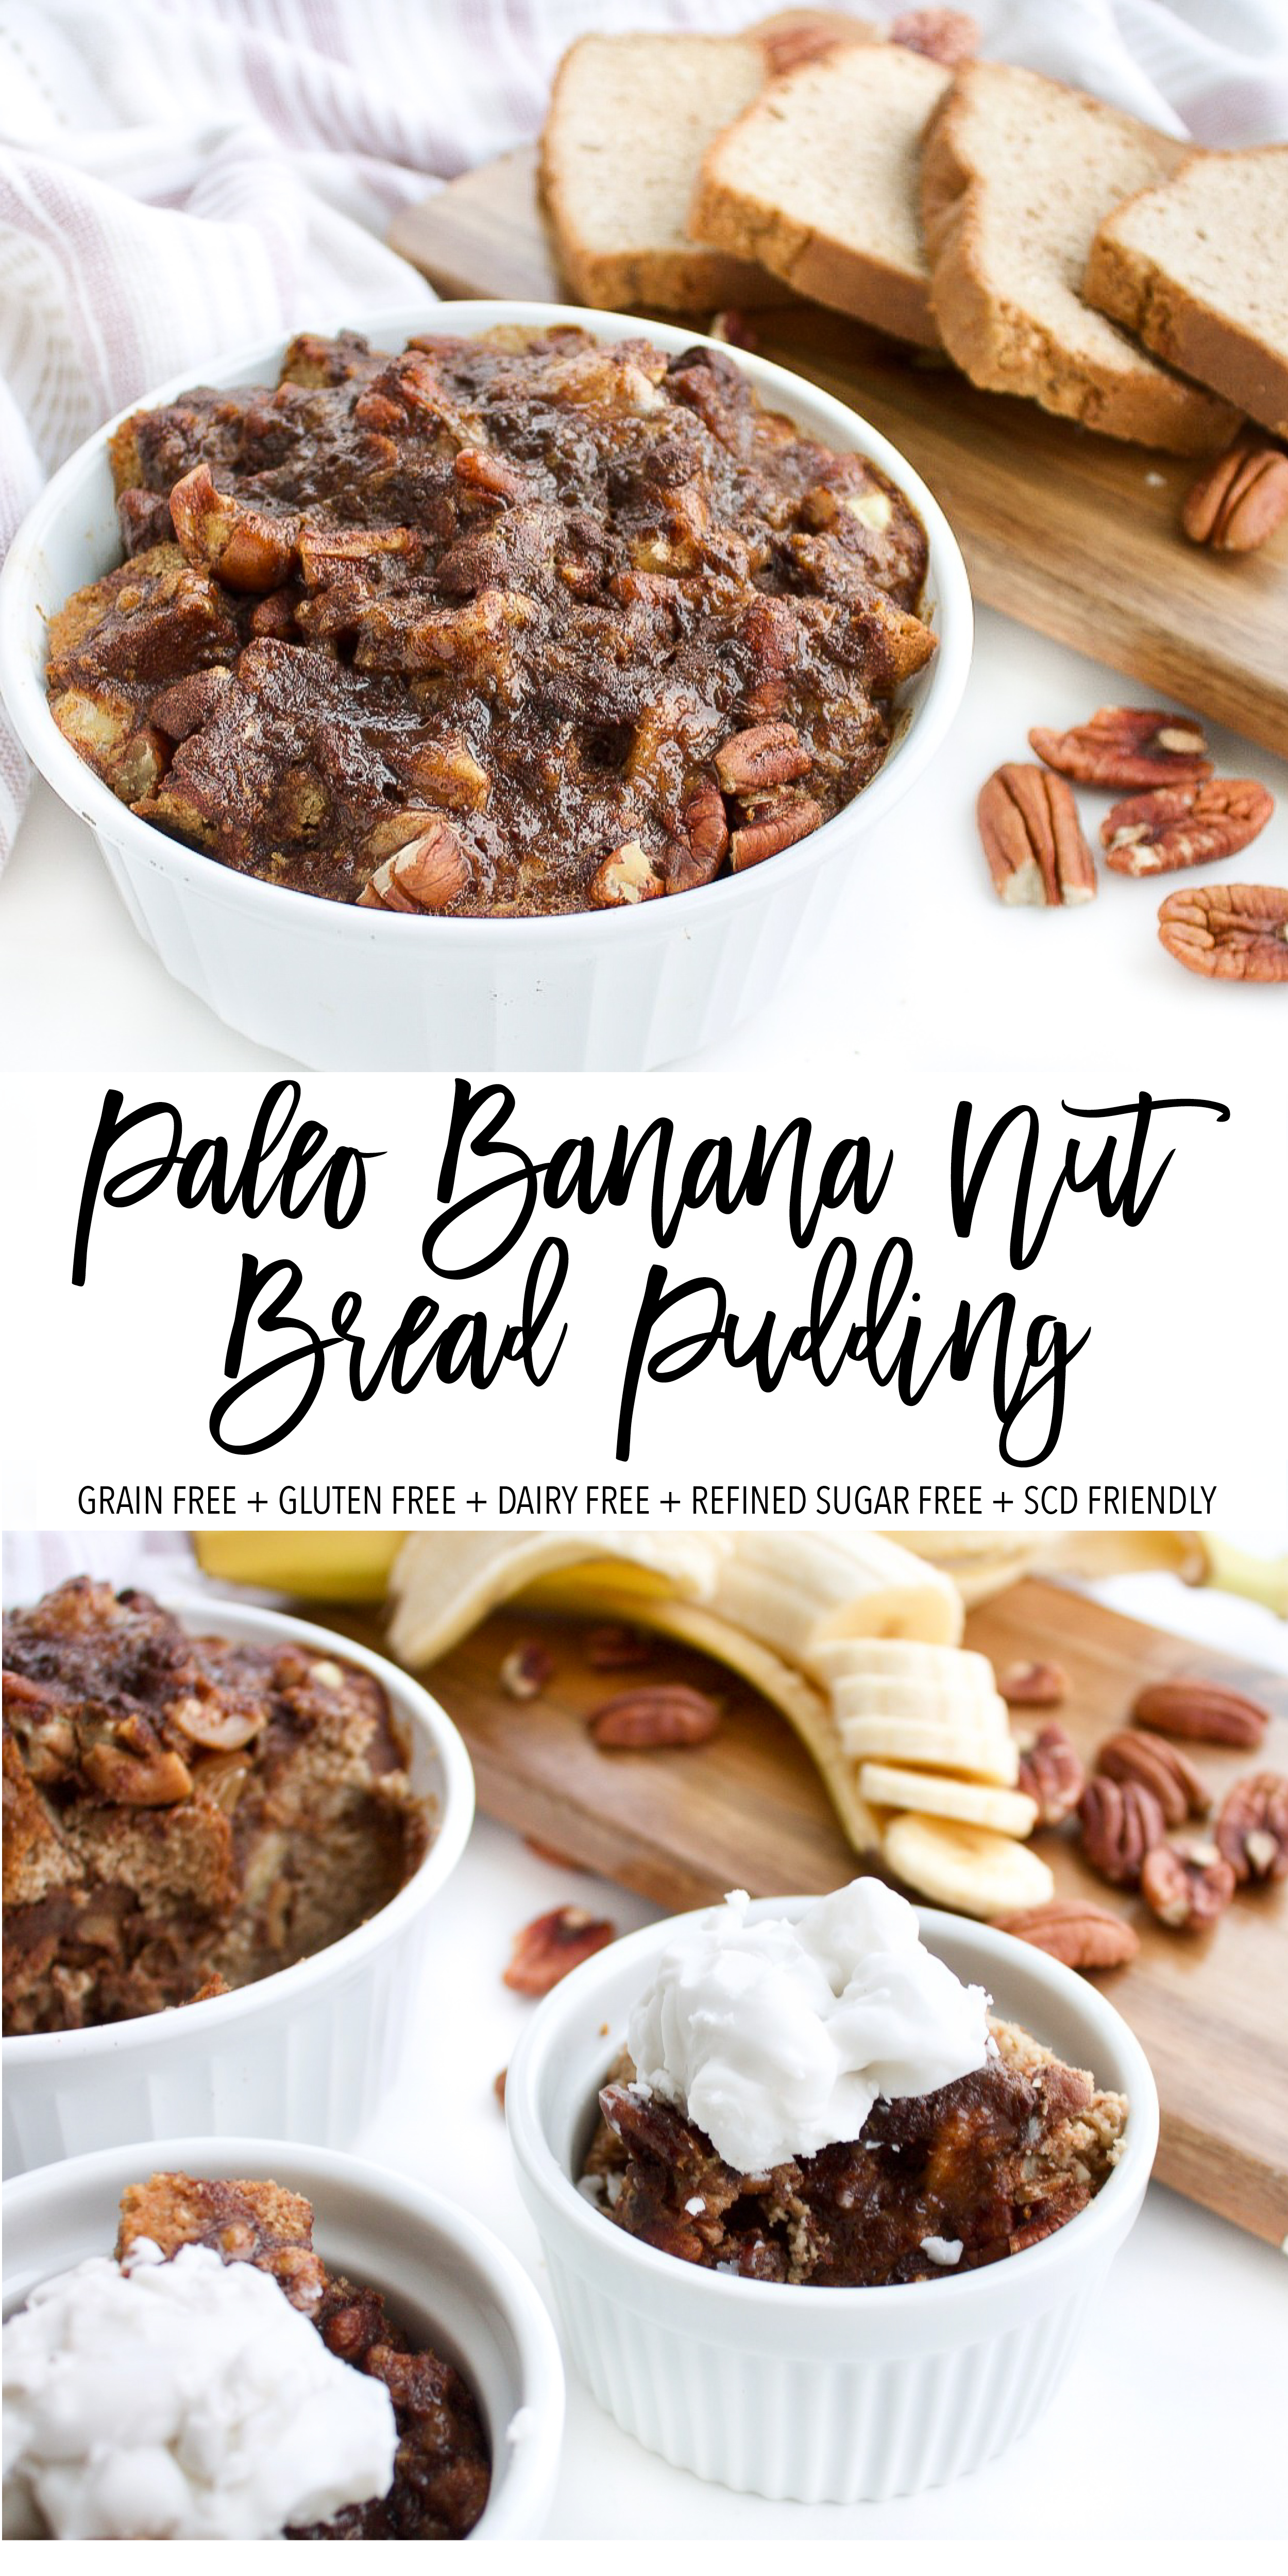 This paleo banana nut bread pudding is a perfect healthy breakfast or healthy desert recipe! It is grain free, gluten free, dairy free, refined sugar free and Specific Carbohydrate Diet friendly! It's the perfect allergy free recipe. Made with real ingredients like coconut flour paleo bread and pecans. Click through the try the recipe for yourself! #paleo #specificcarbohydratediet #antiinflammatory #paleobaking